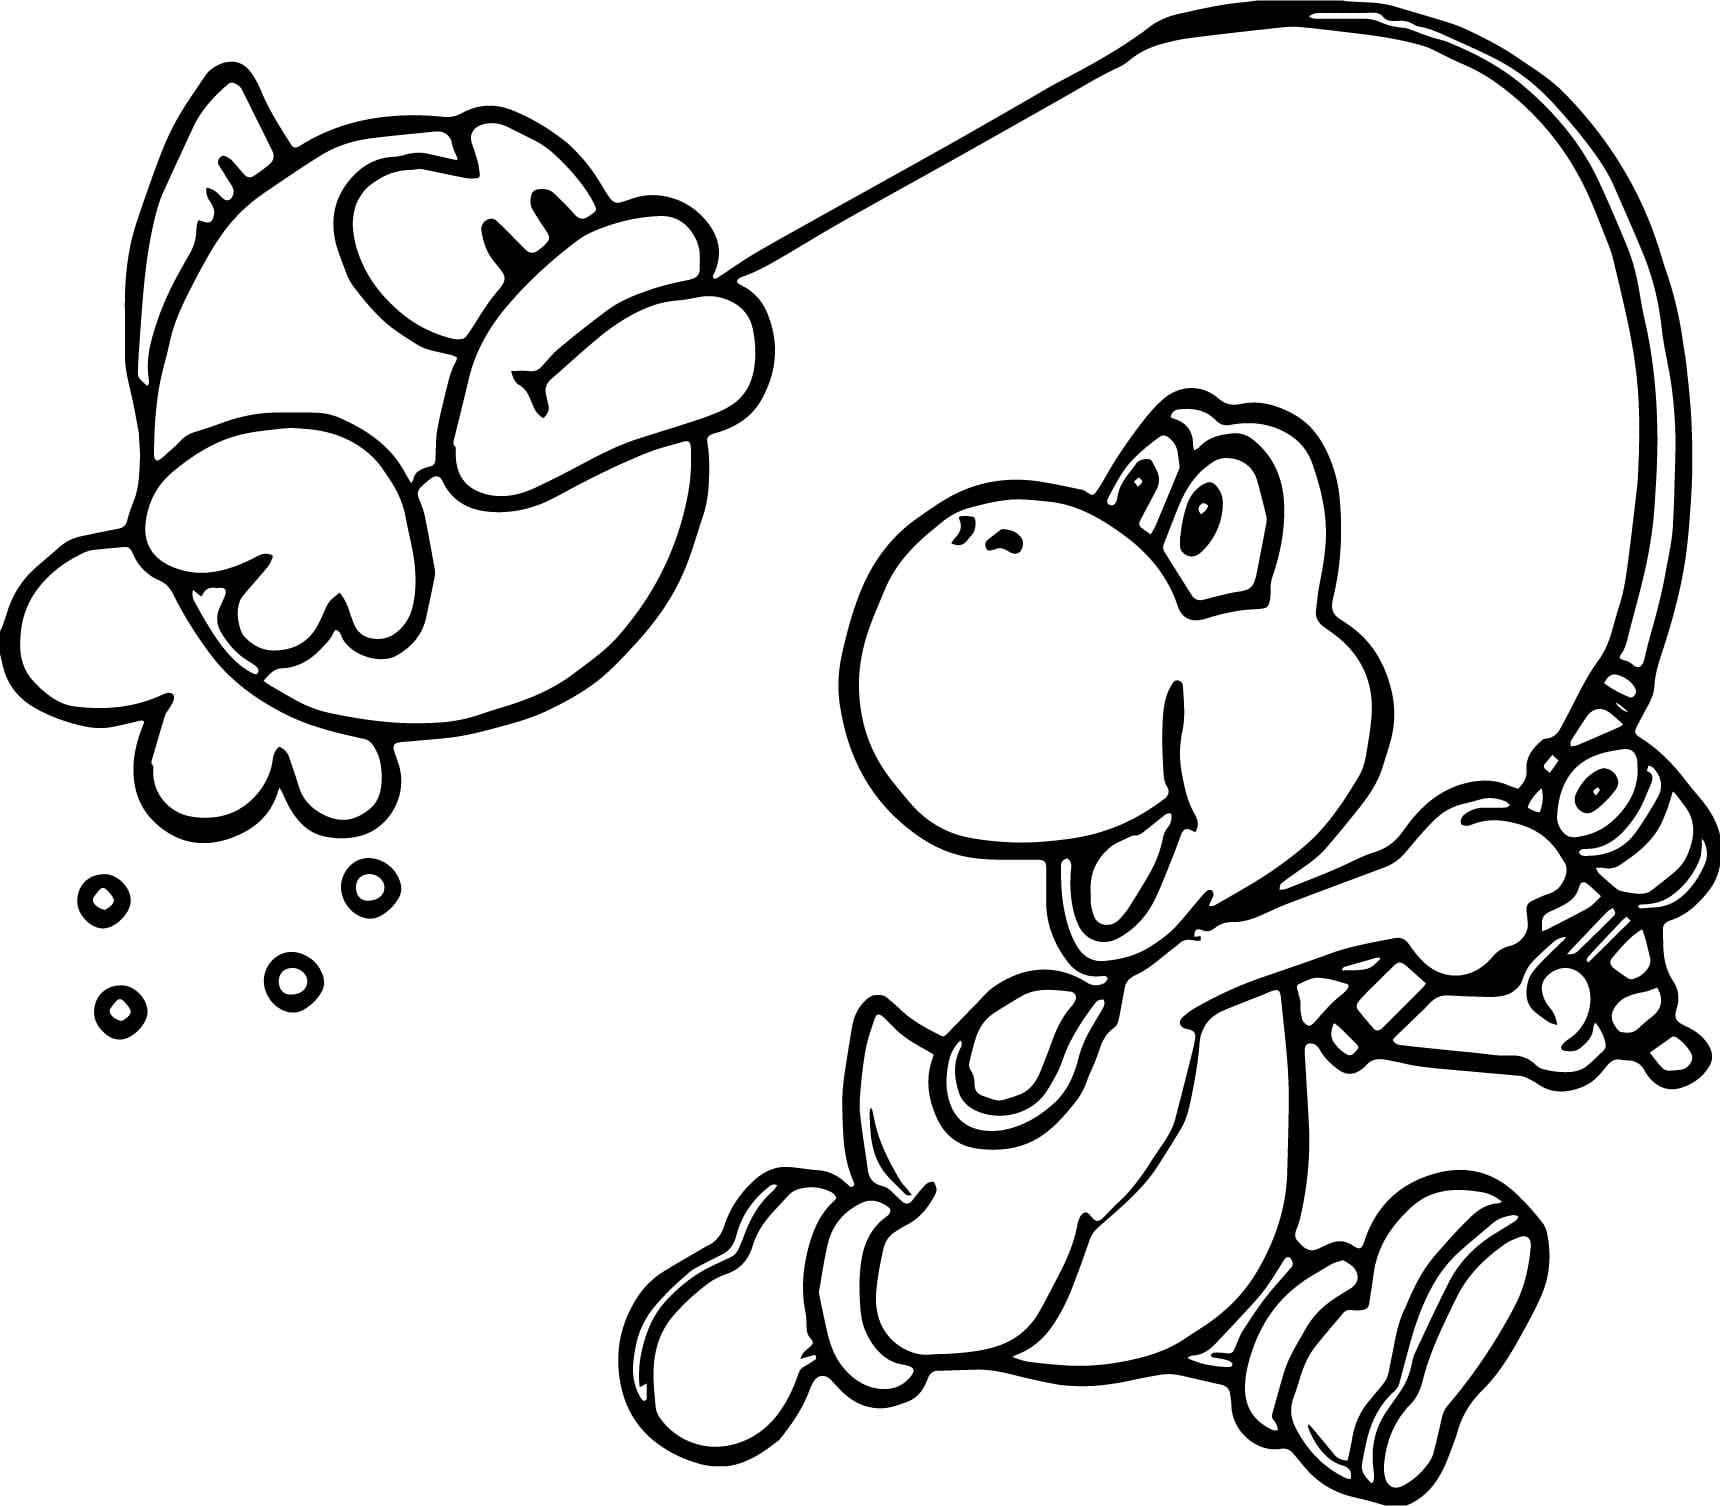 Yoshi Coloring Pages Bloodbrothers Me Ribsvigyapan Com Noticeable